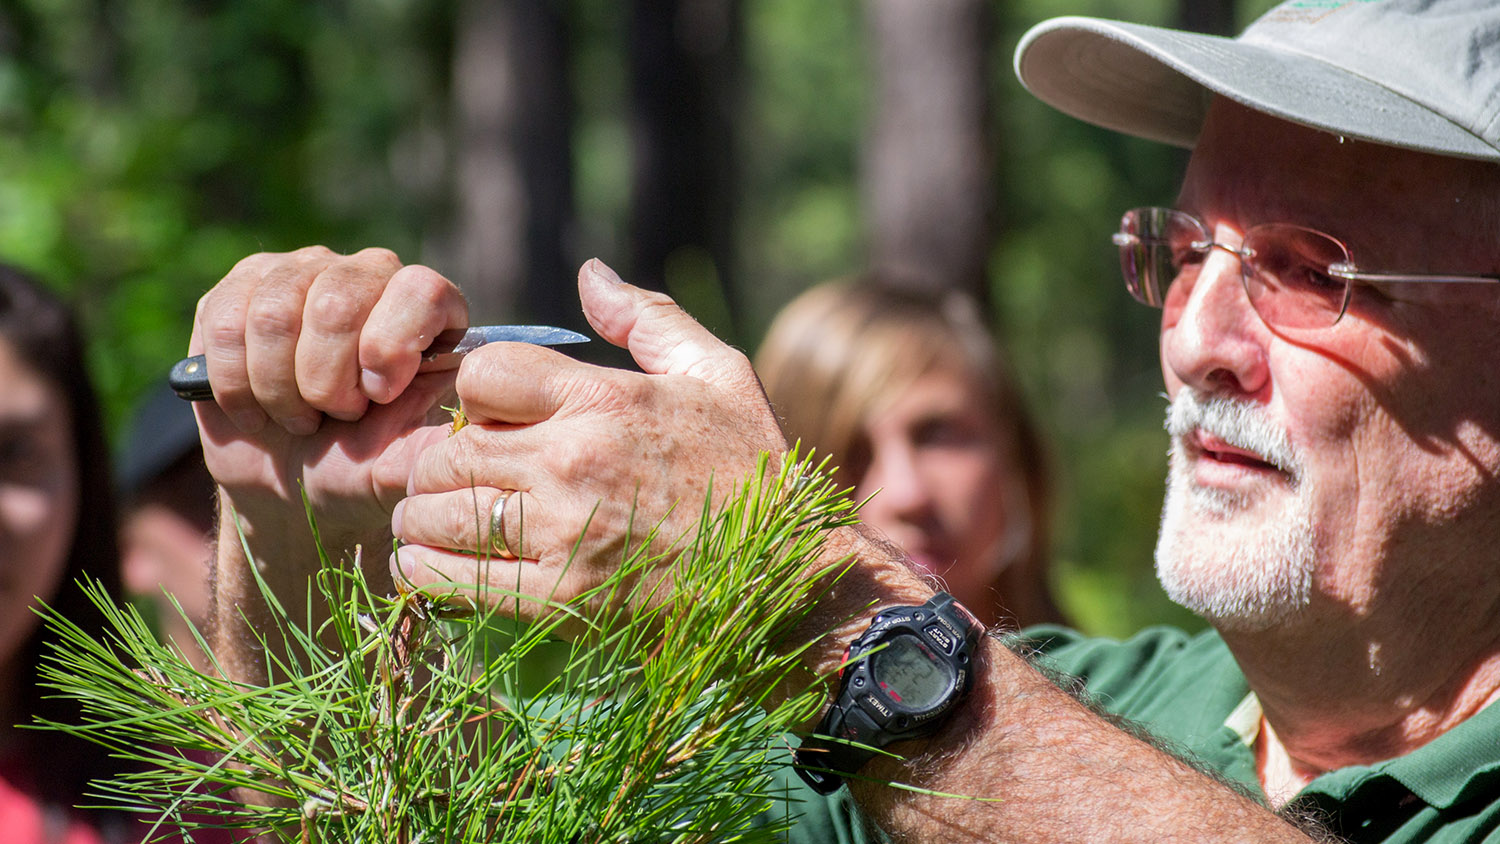 Tree demo - About - Forestry and Environmental Resources Spotlight: William Casola - Forestry and Environmental Resources NCState University